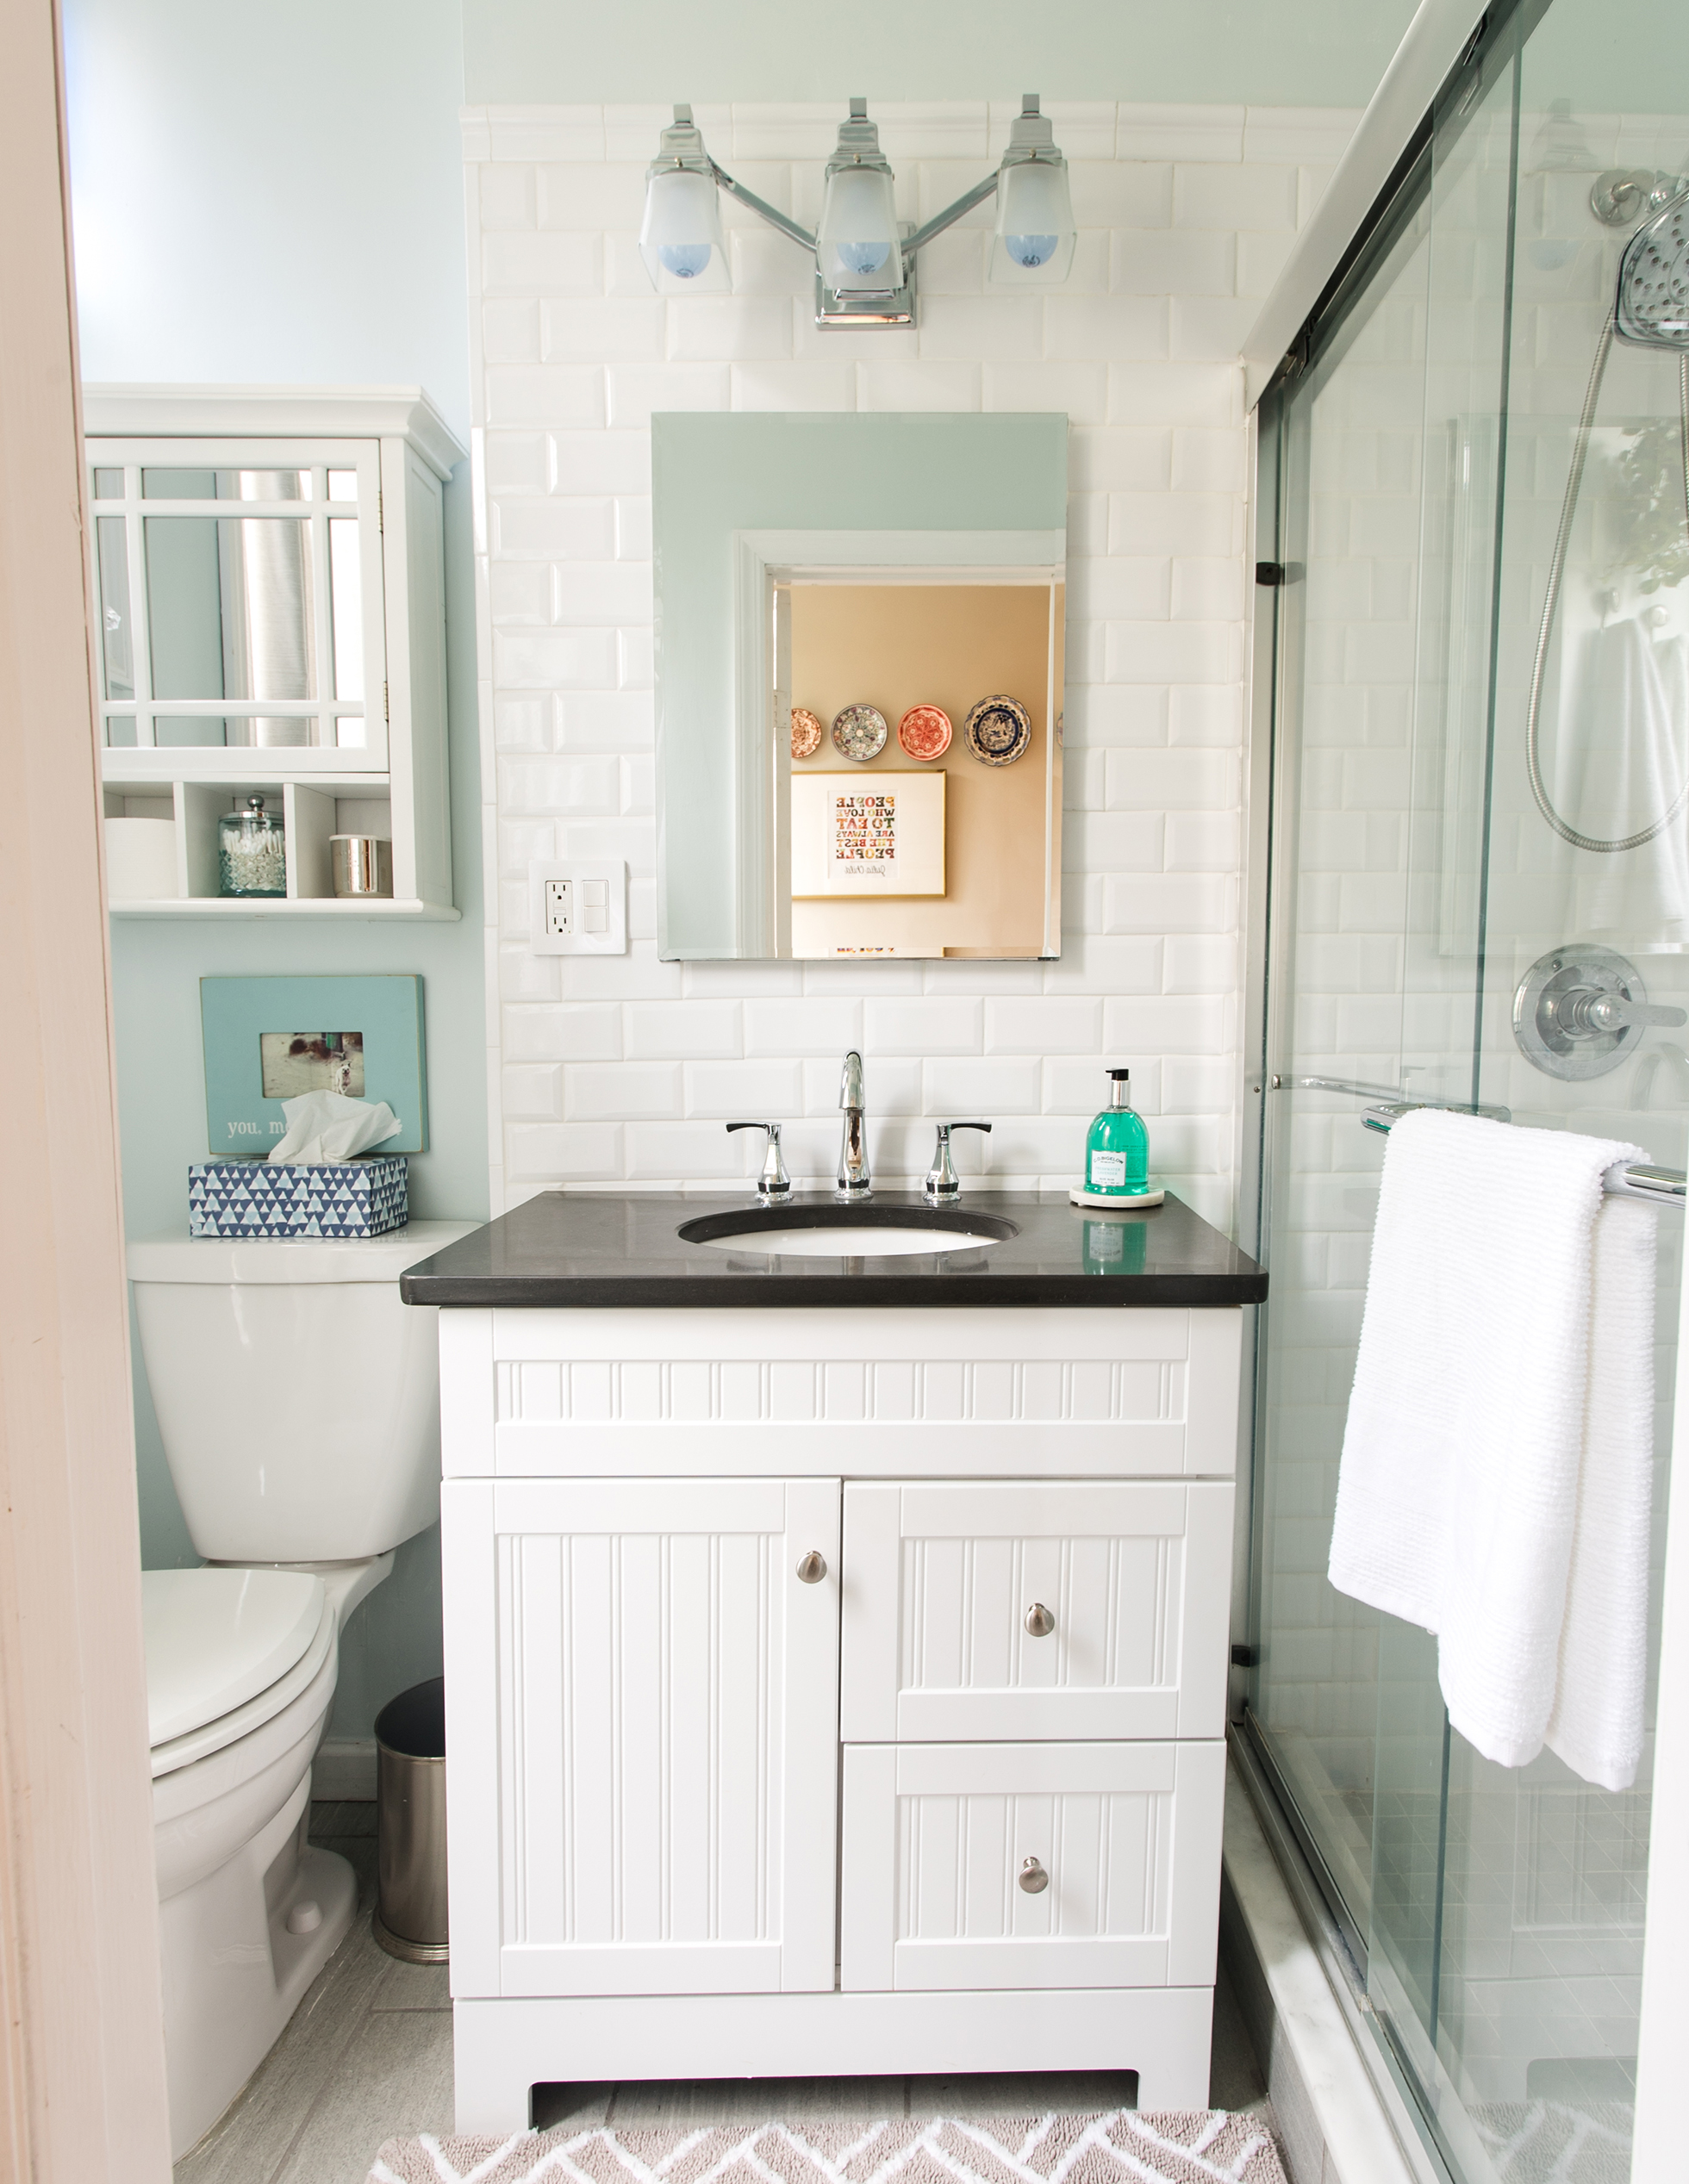 White bathroom with black-counter vanity and glass shower